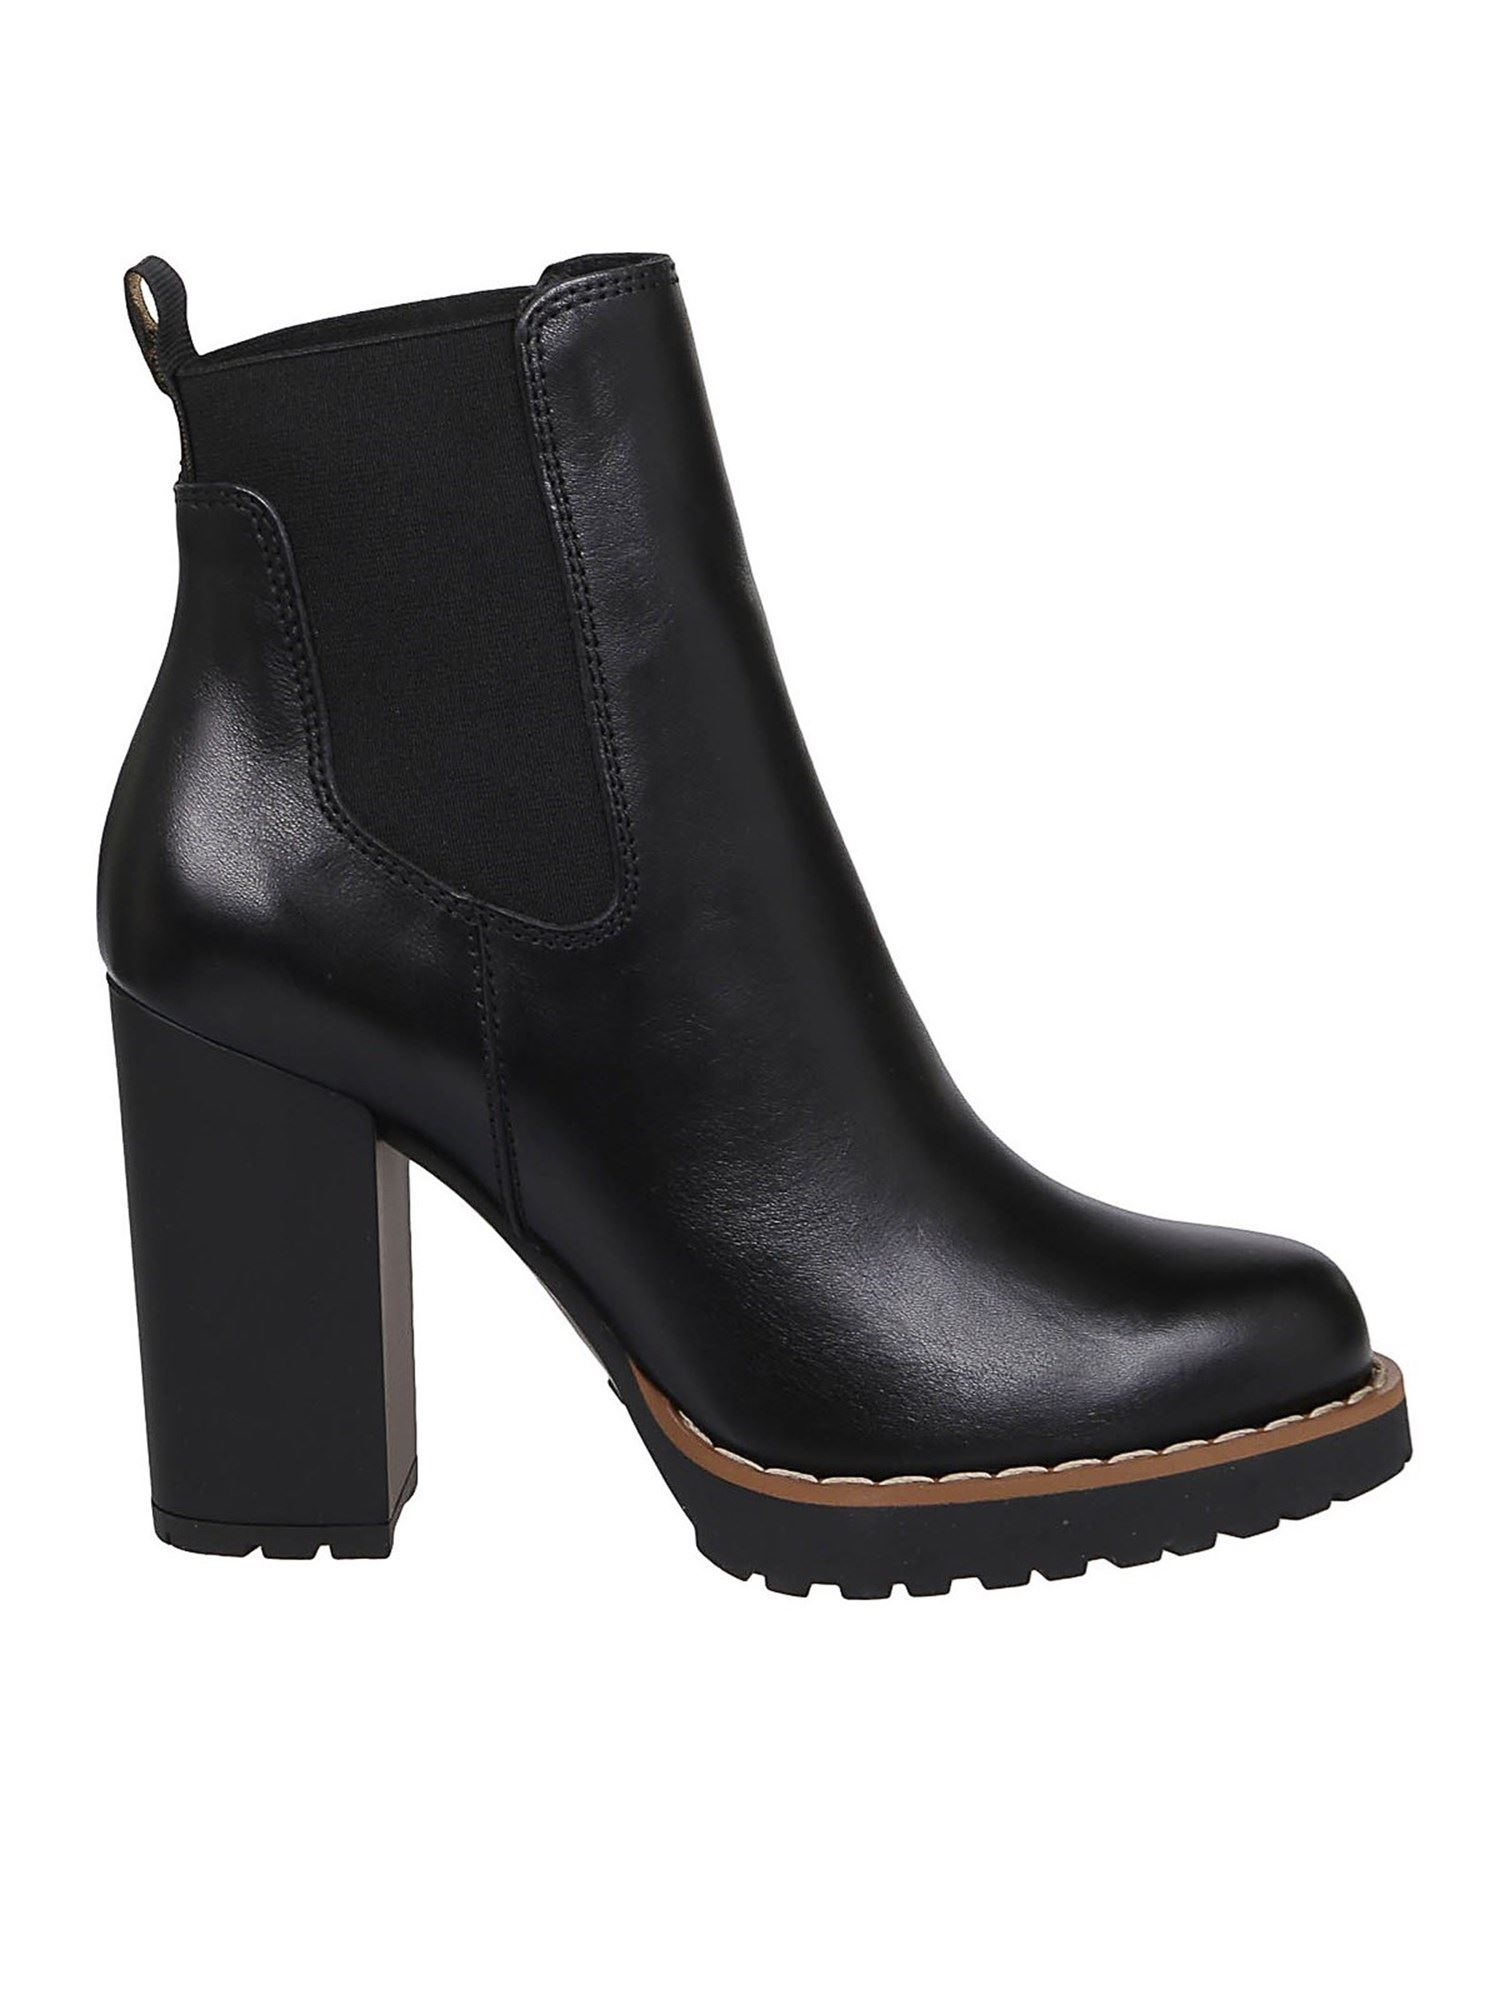 Hogan H542 CHELSEA BOOTS IN BLACK